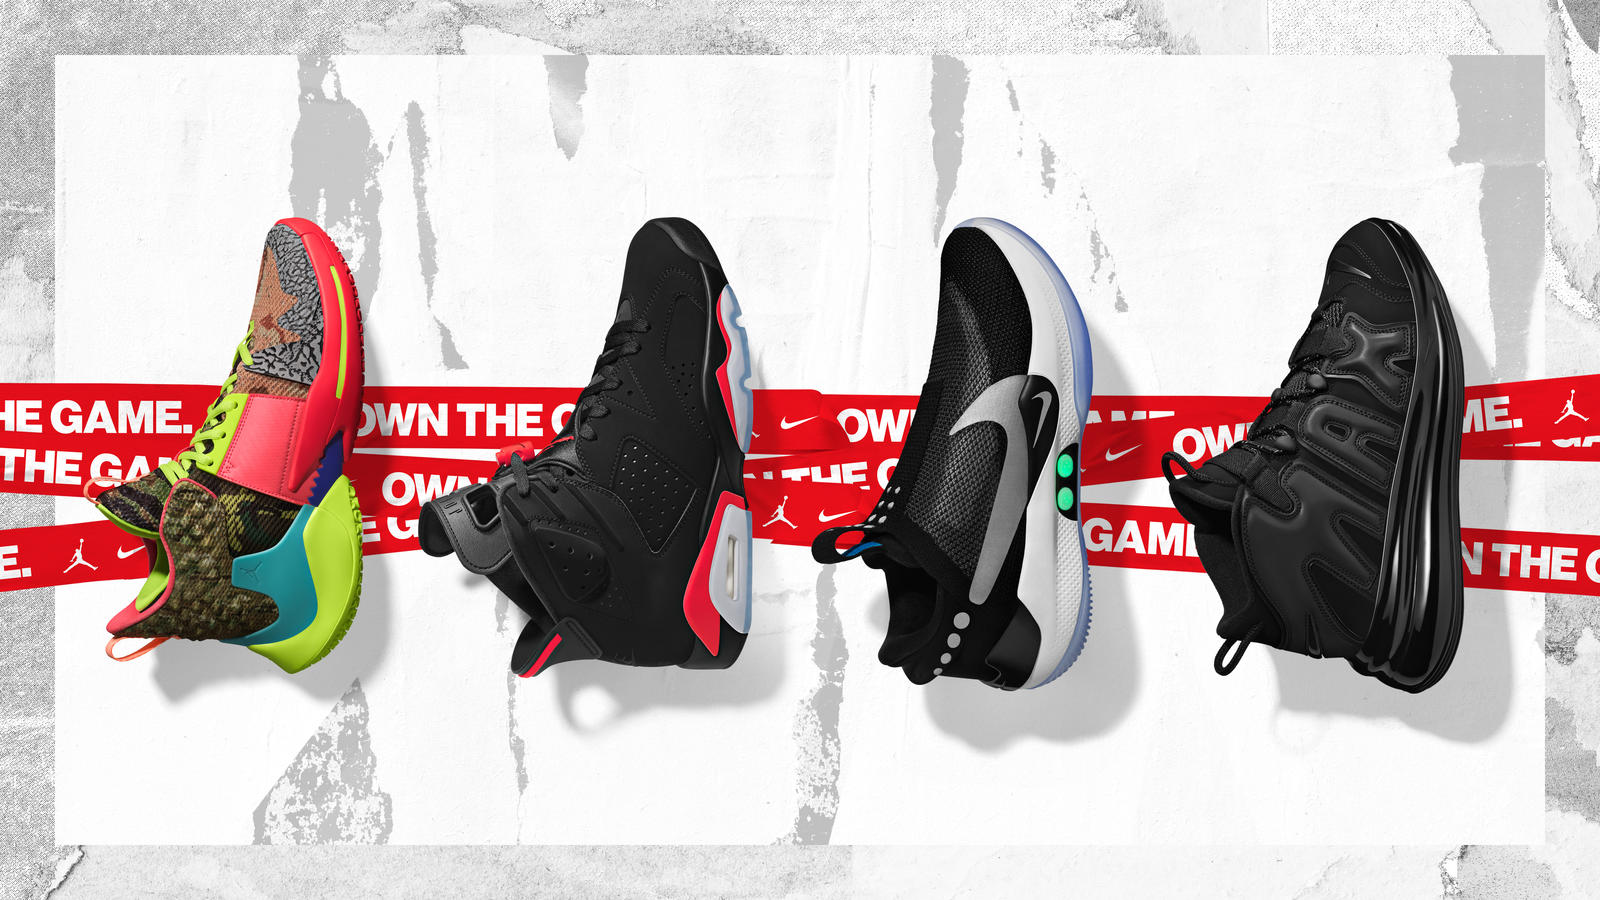 3f5c7844d1 Nike and Jordan Brand's 2019 NBA All-Star Footwear Drops - Nike News